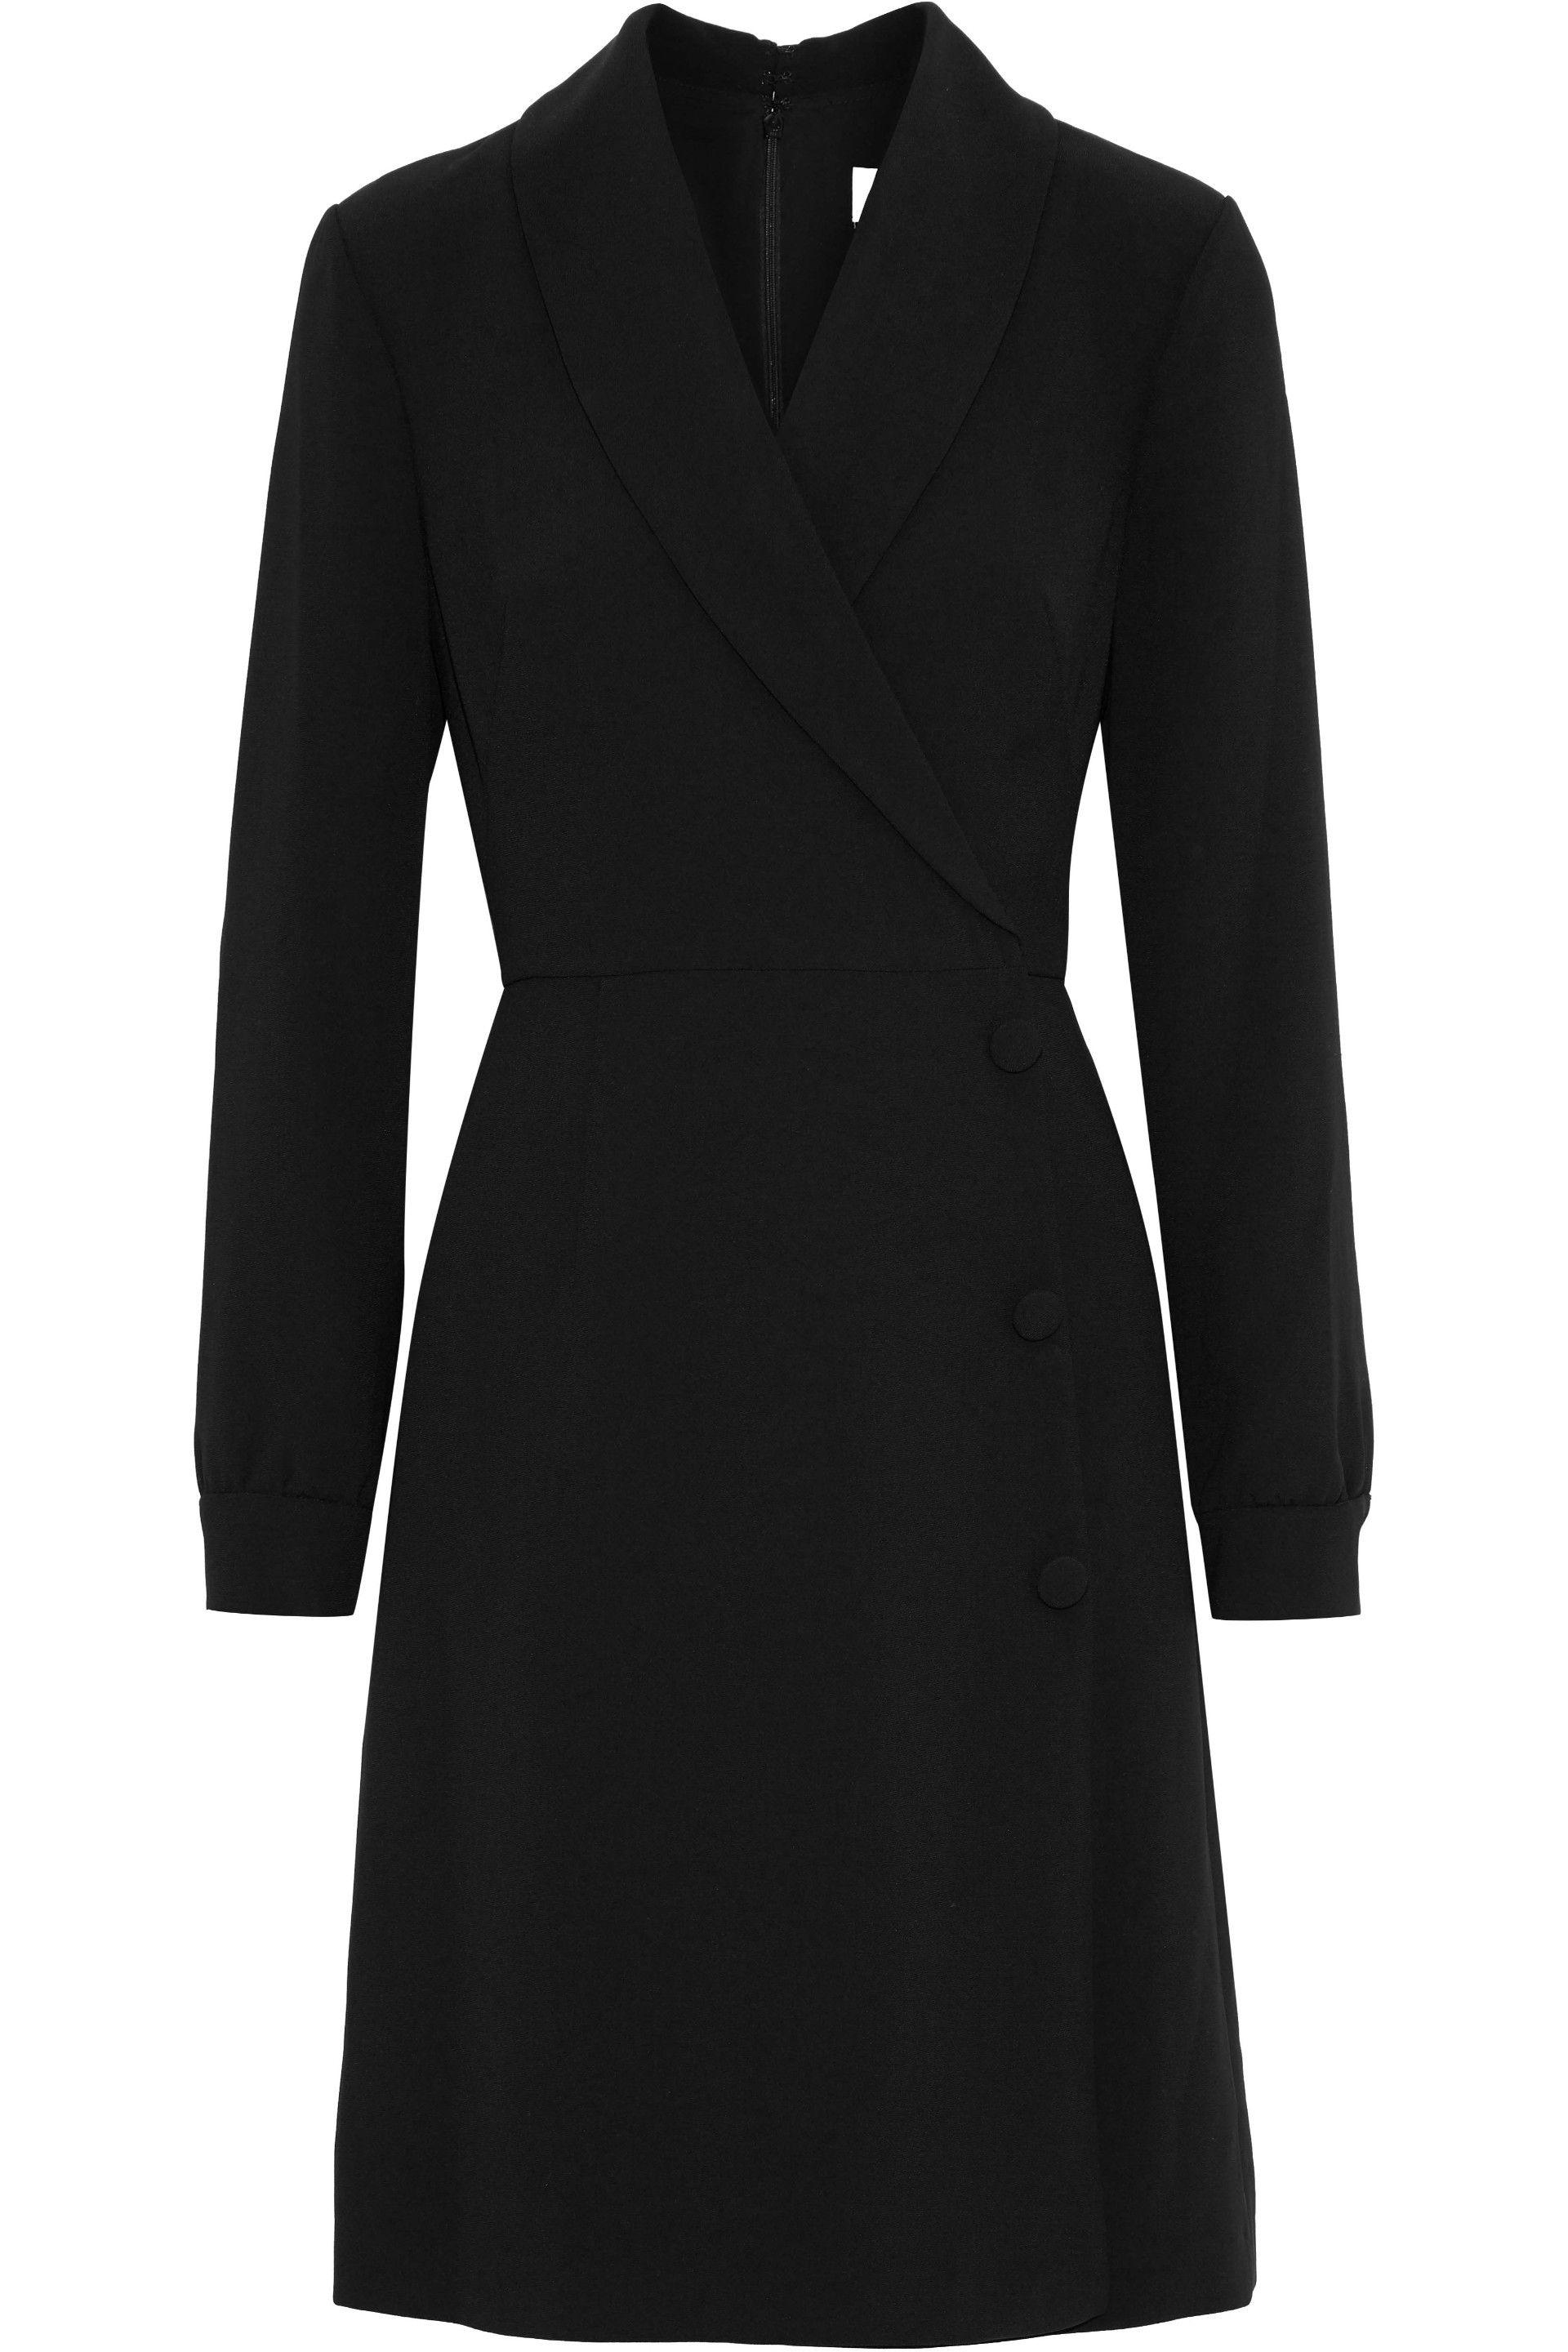 1d65c15cd55c mikael-aghal-Black-Wrap-effect-Crepe-Dress.jpeg